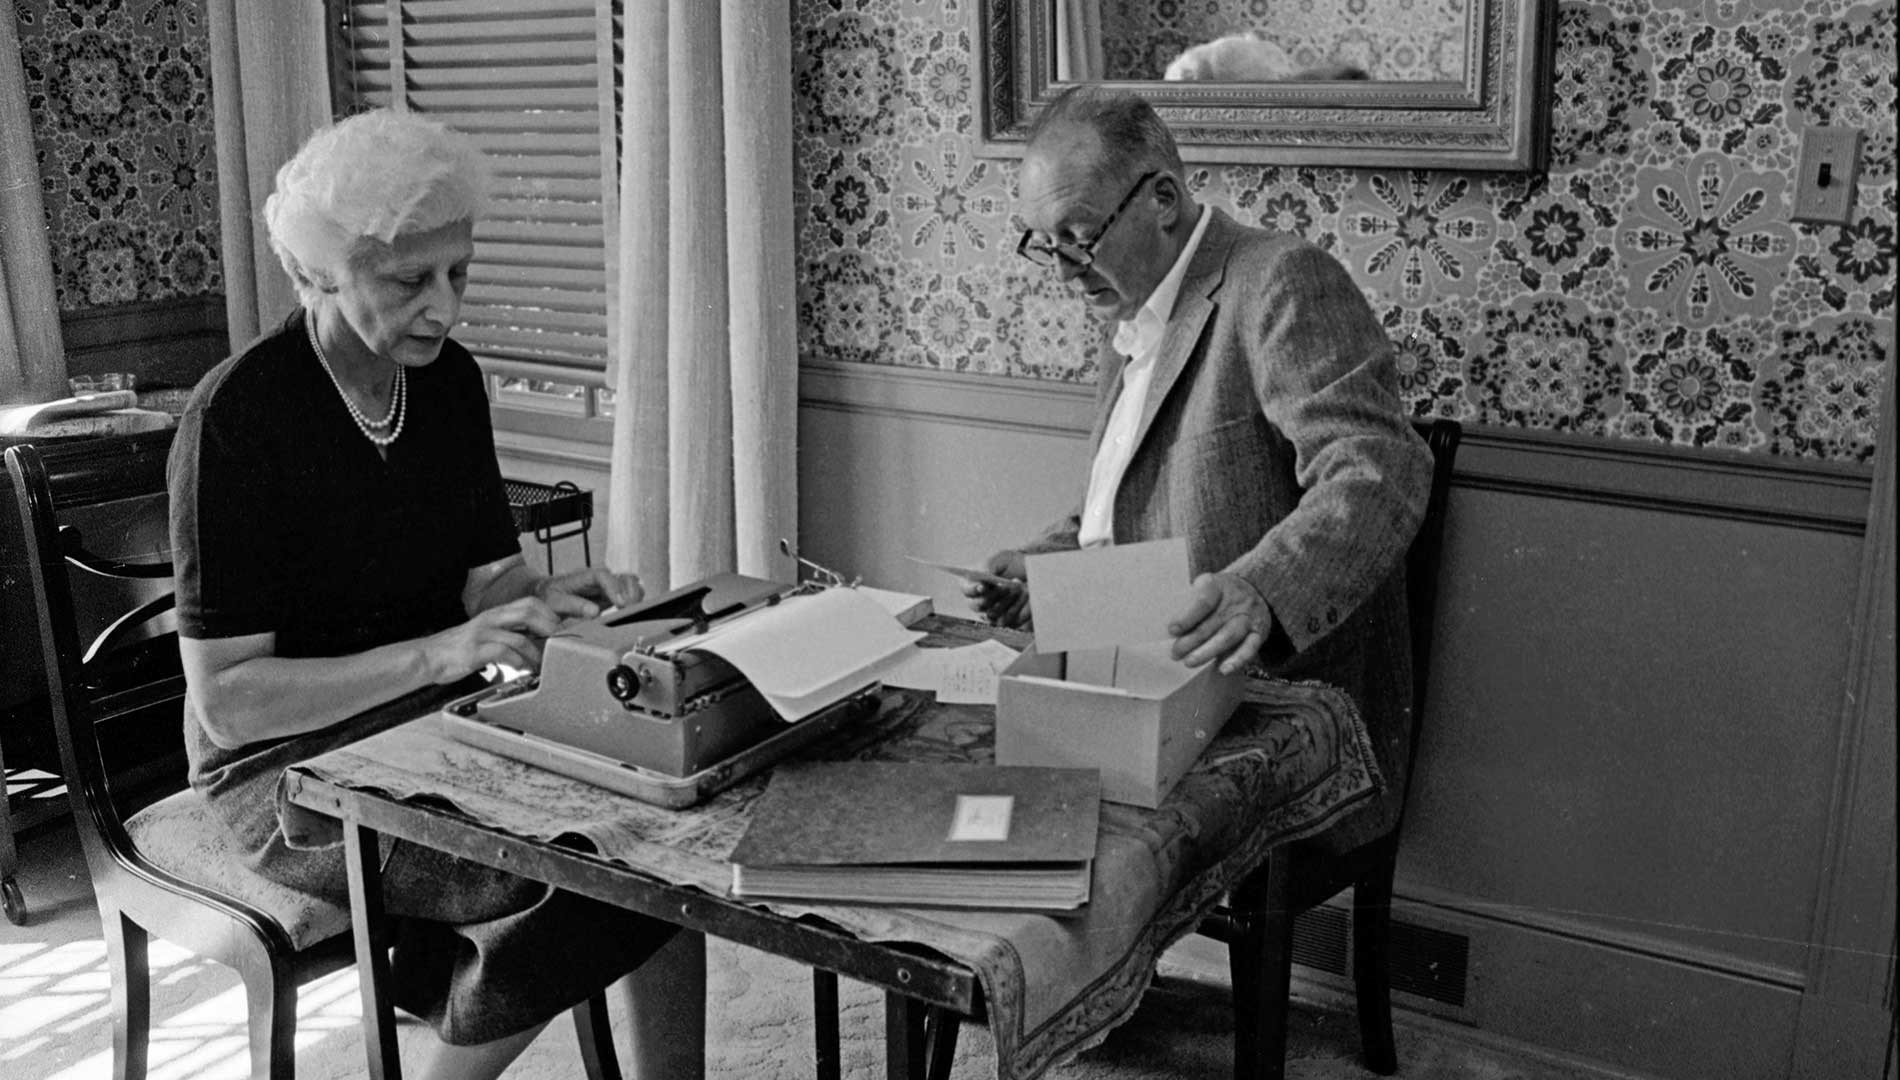 After Nabokov's death, Vera kept spending up to 6 hours a day behind the typewriter, translating his novels